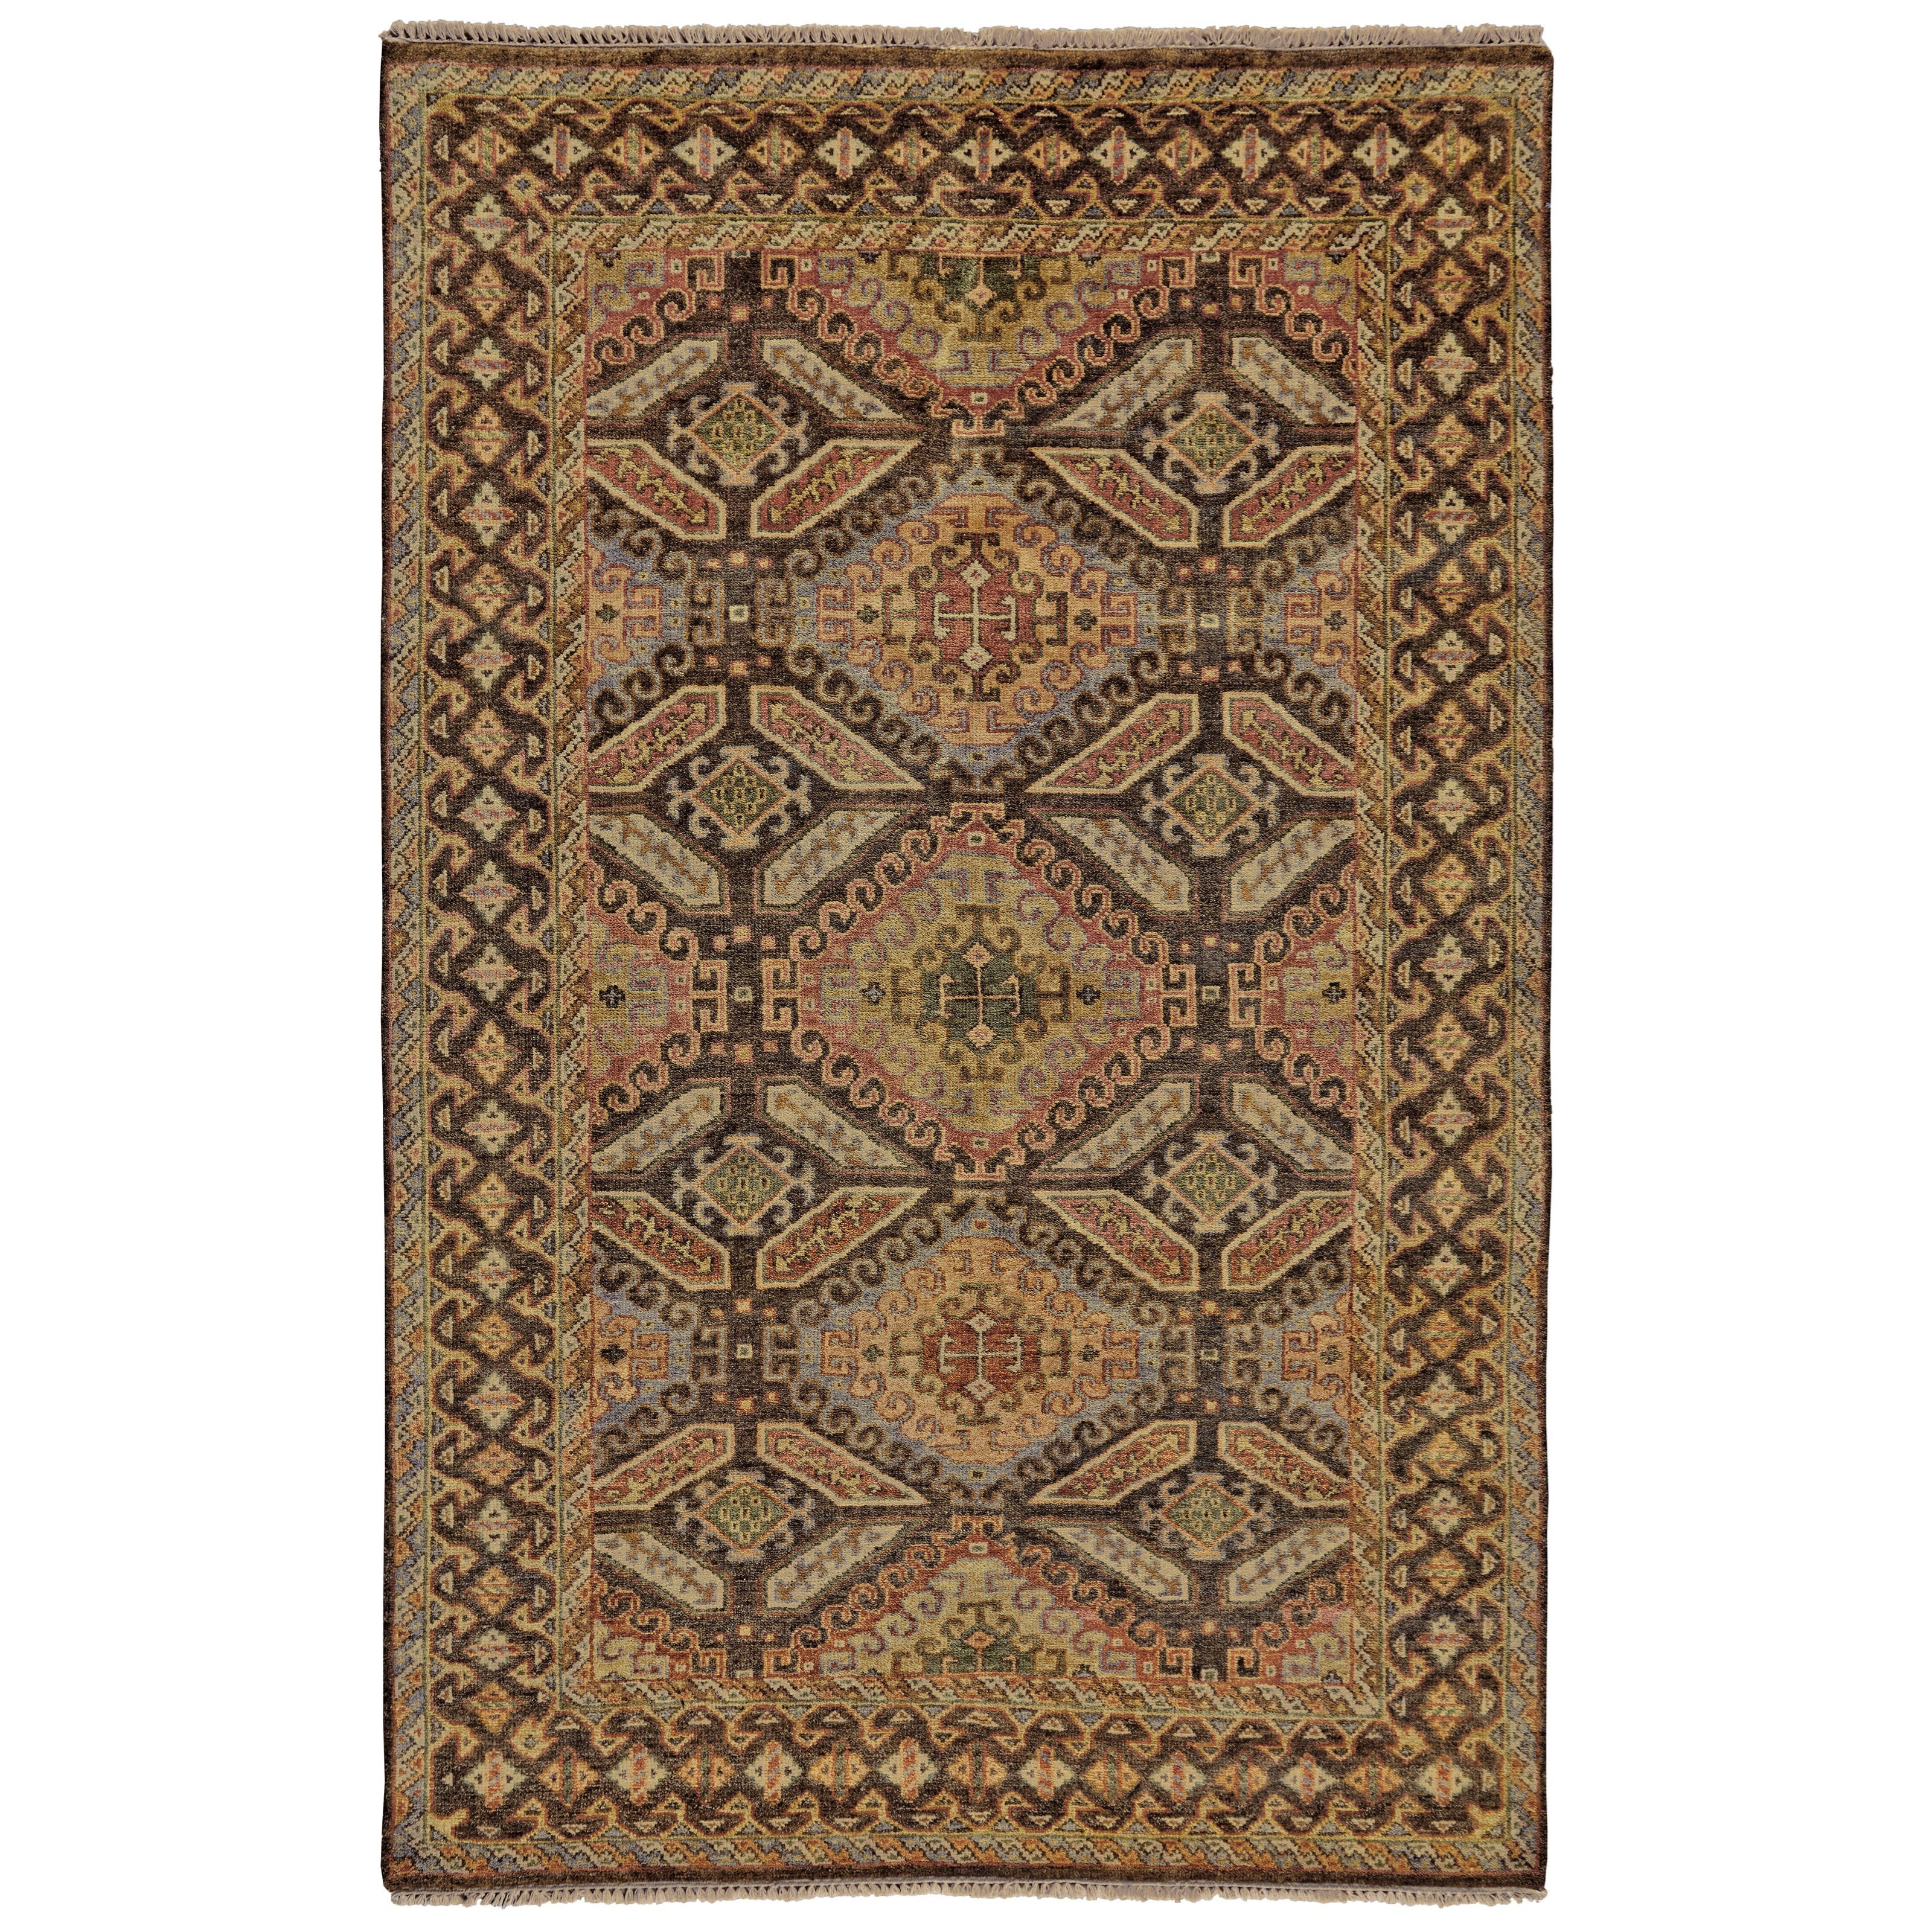 """Ashi Brown/Brown 8'-6"""" x 11'-6"""" Area Rug by Feizy Rugs at Jacksonville Furniture Mart"""